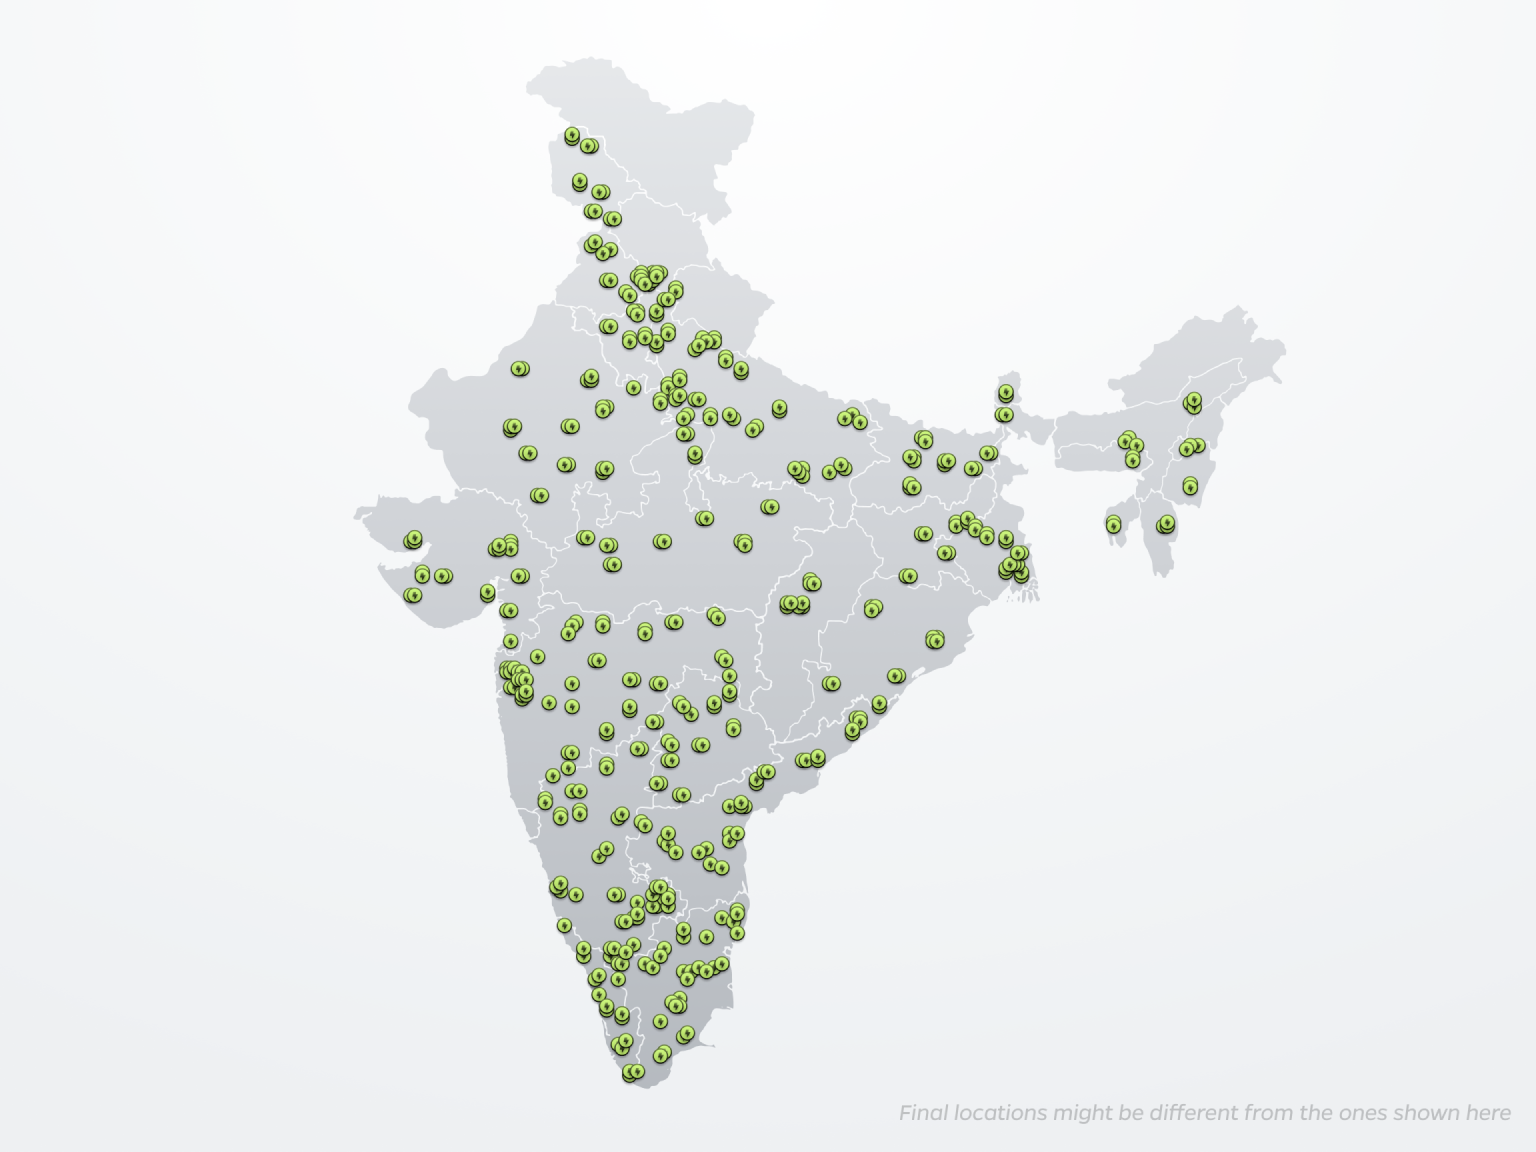 India Hypercharger Network